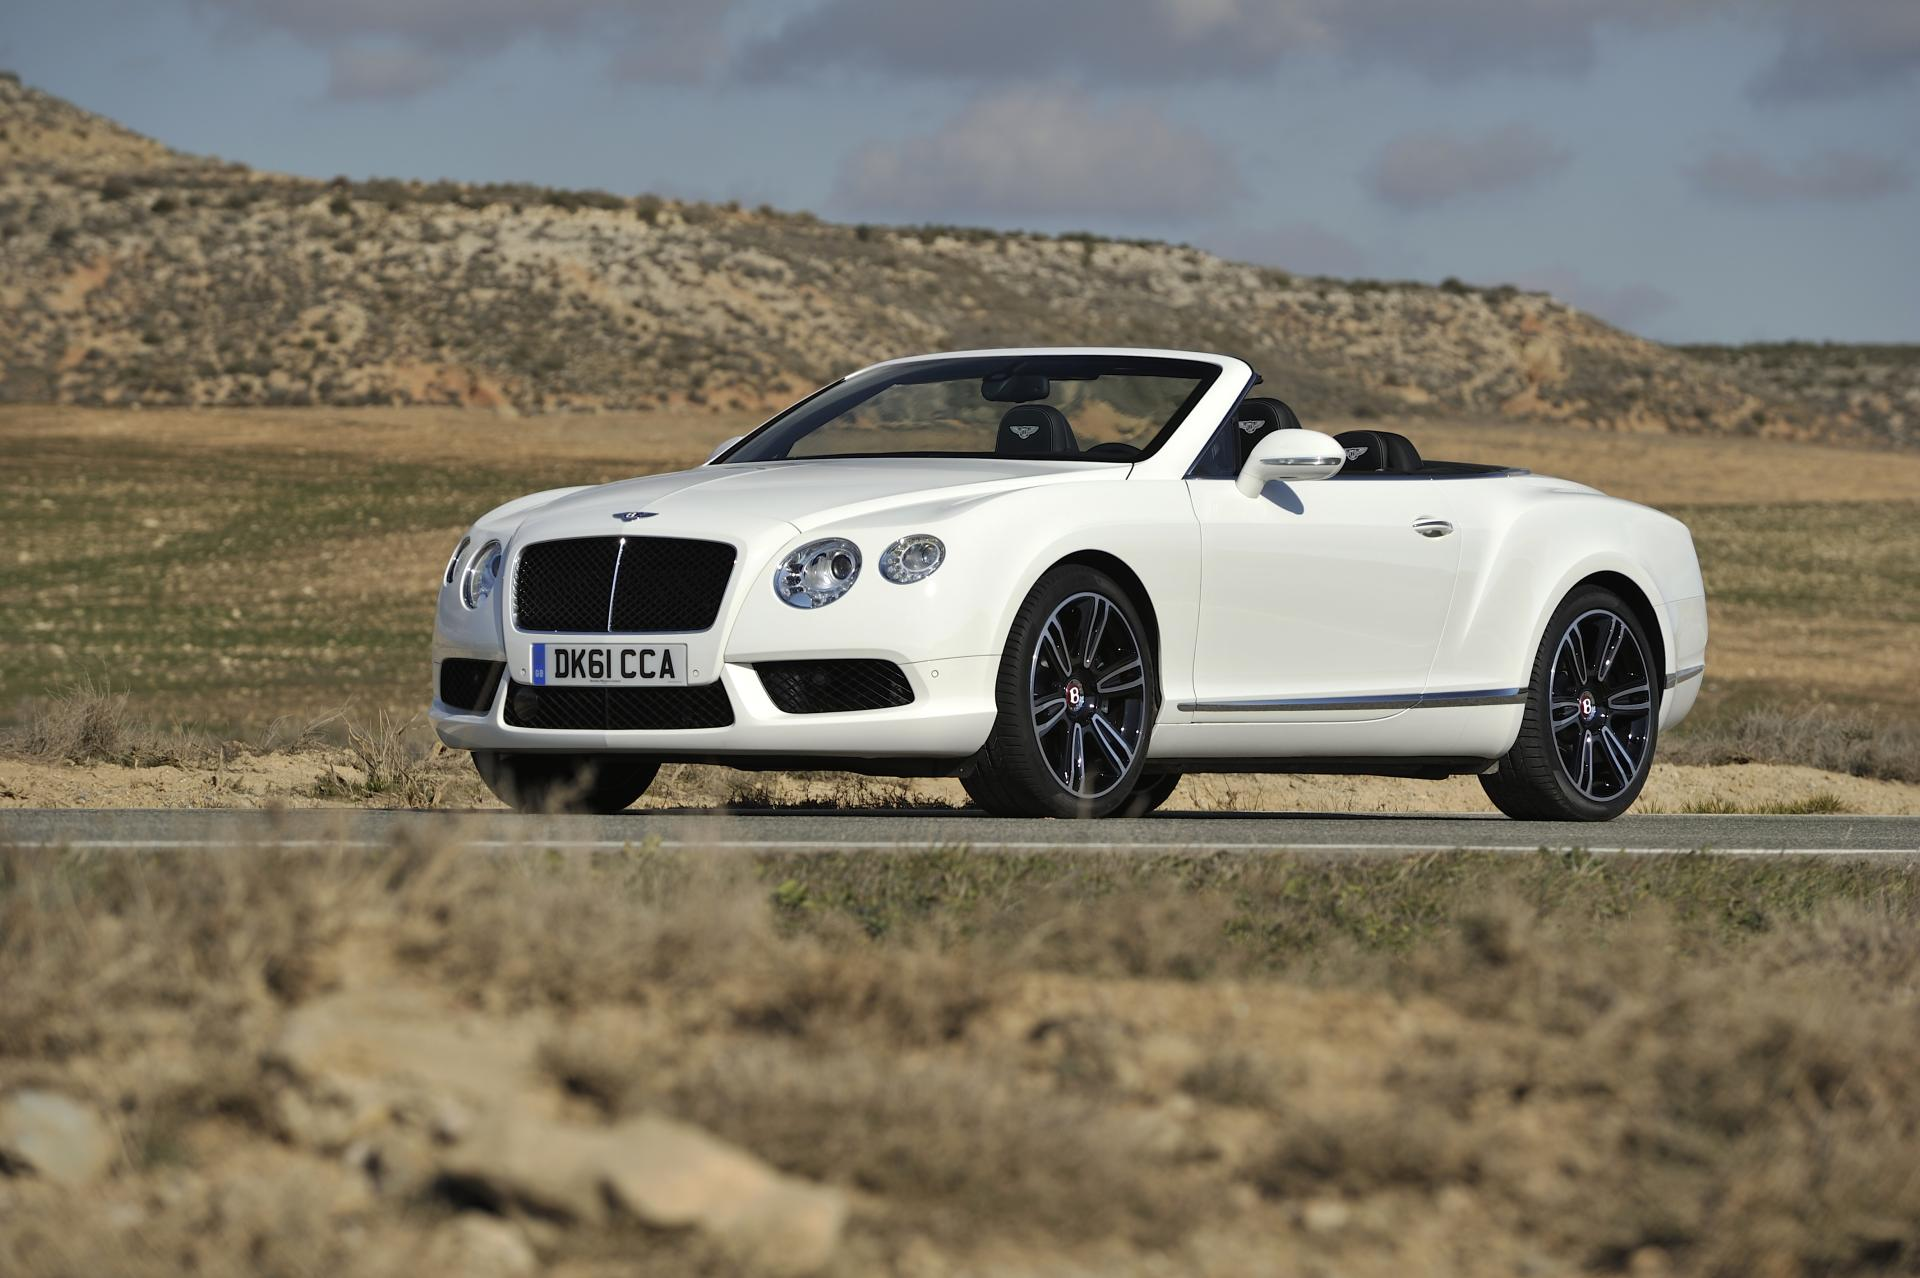 wallpaper image hd deluxe convertible black bentley newest car price of coupe